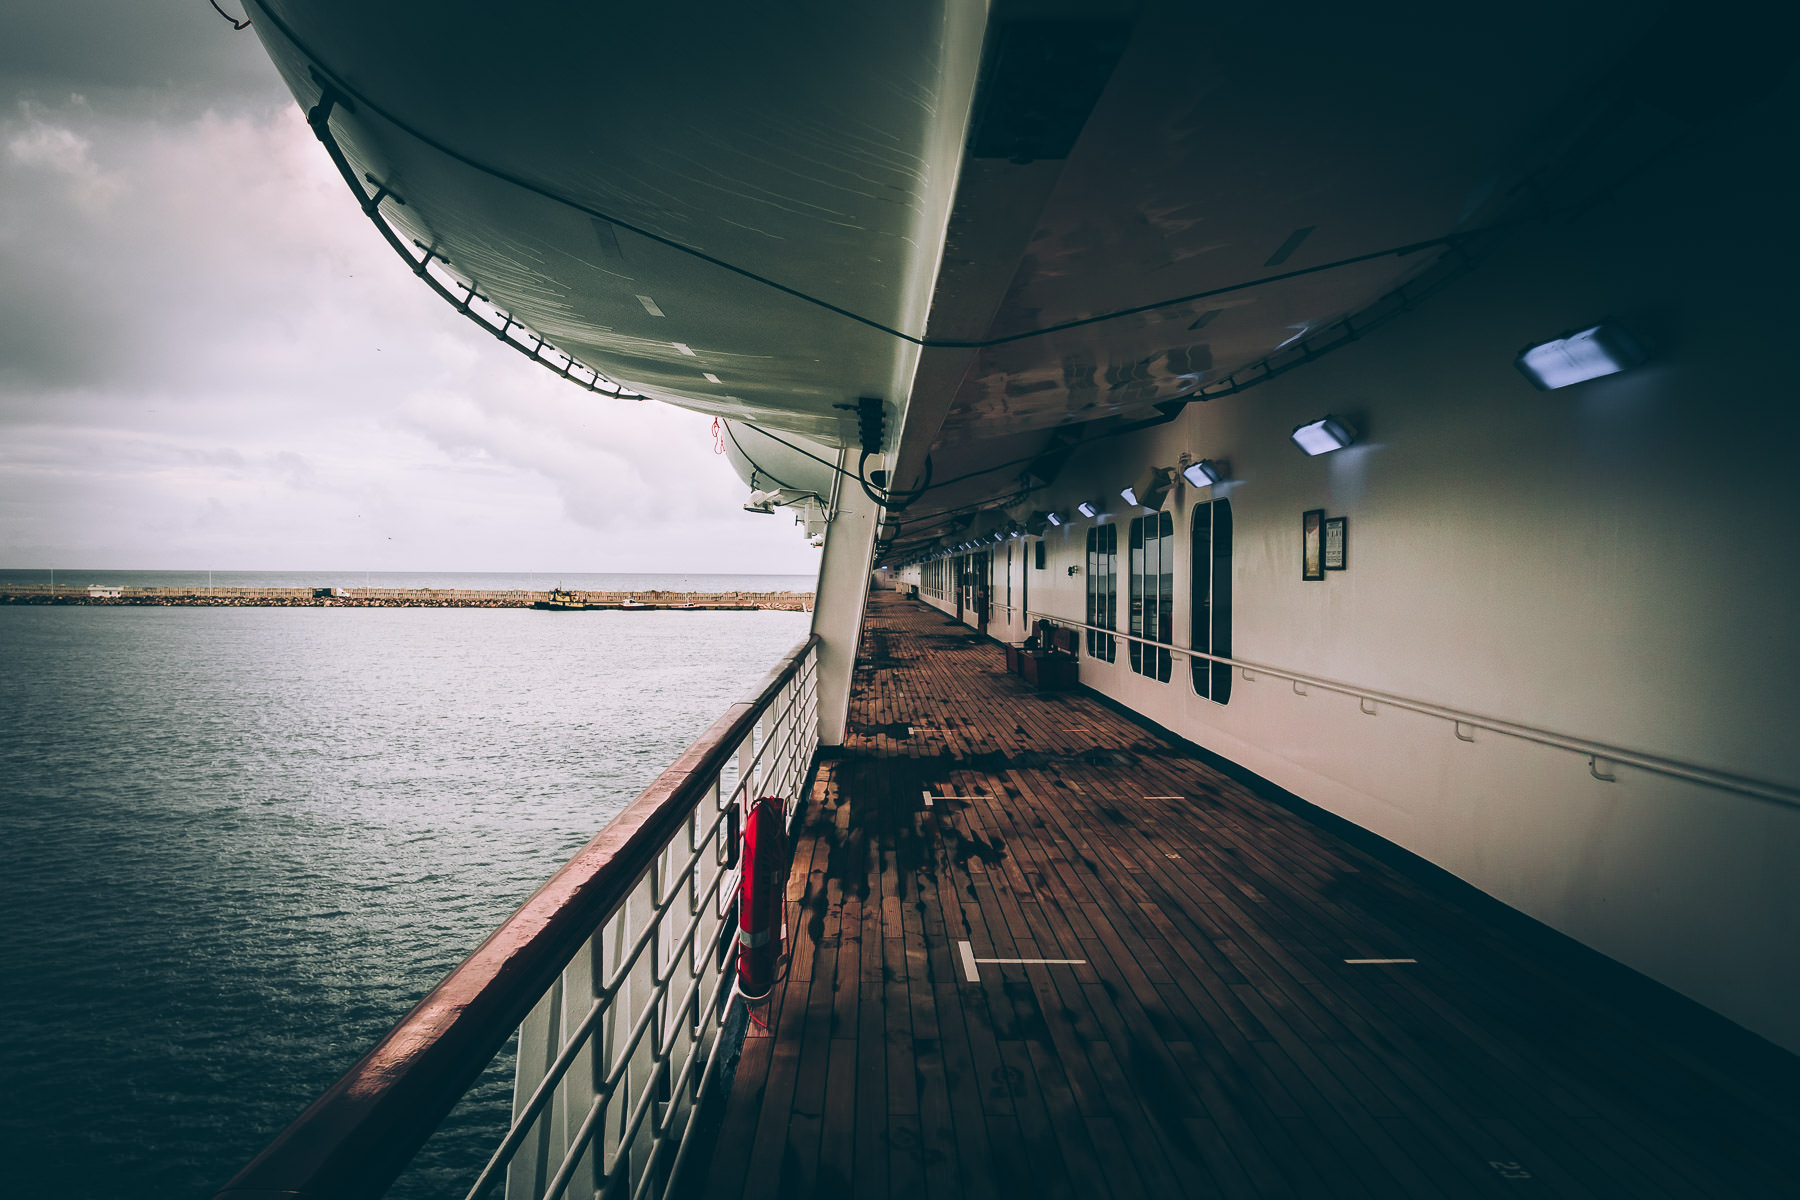 The port side of deck 3 of the cruise ship Carnival Triumph while docked in Progreso, Mexico, on an overcast day.